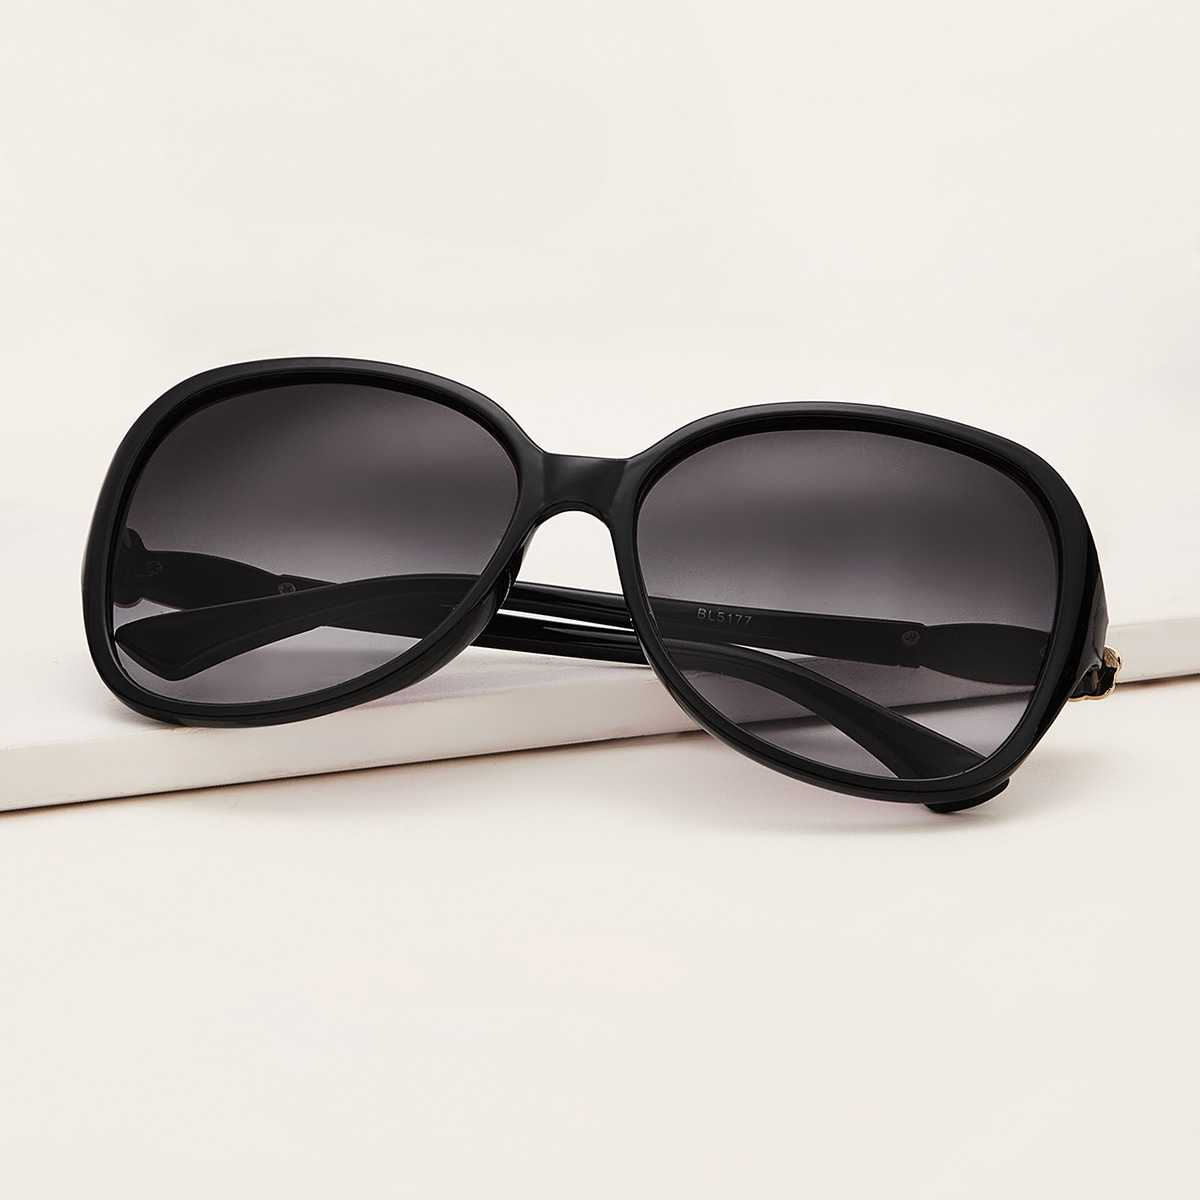 Plain Frame Flat Lens Sunglasses in Black by ROMWE on GOOFASH